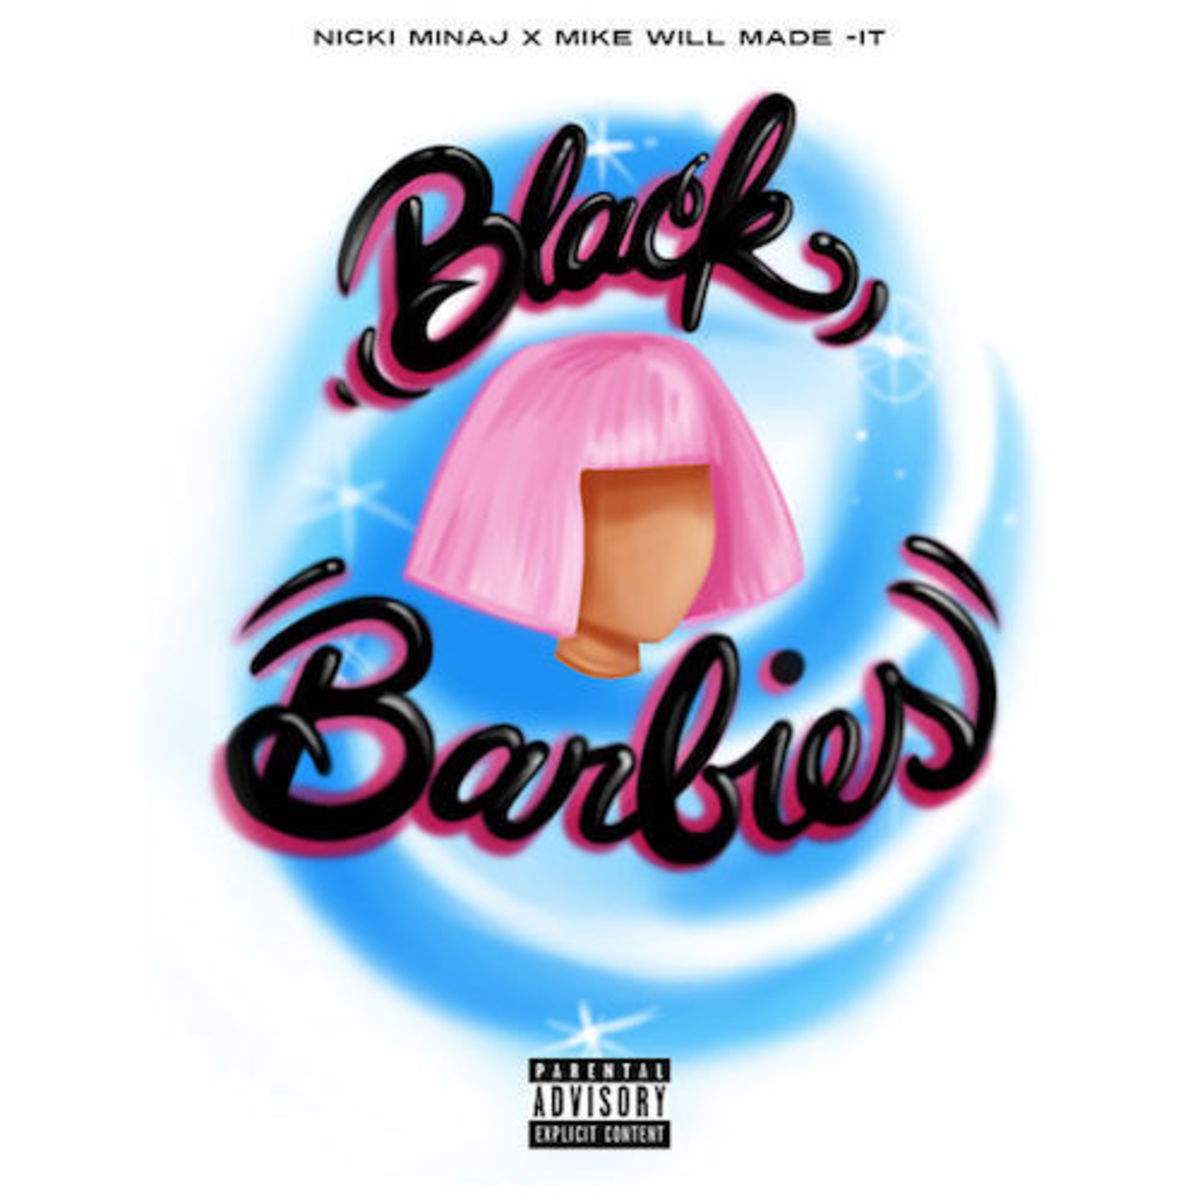 nicki-minaj-mike-will-made-it-black-barbies.jpg